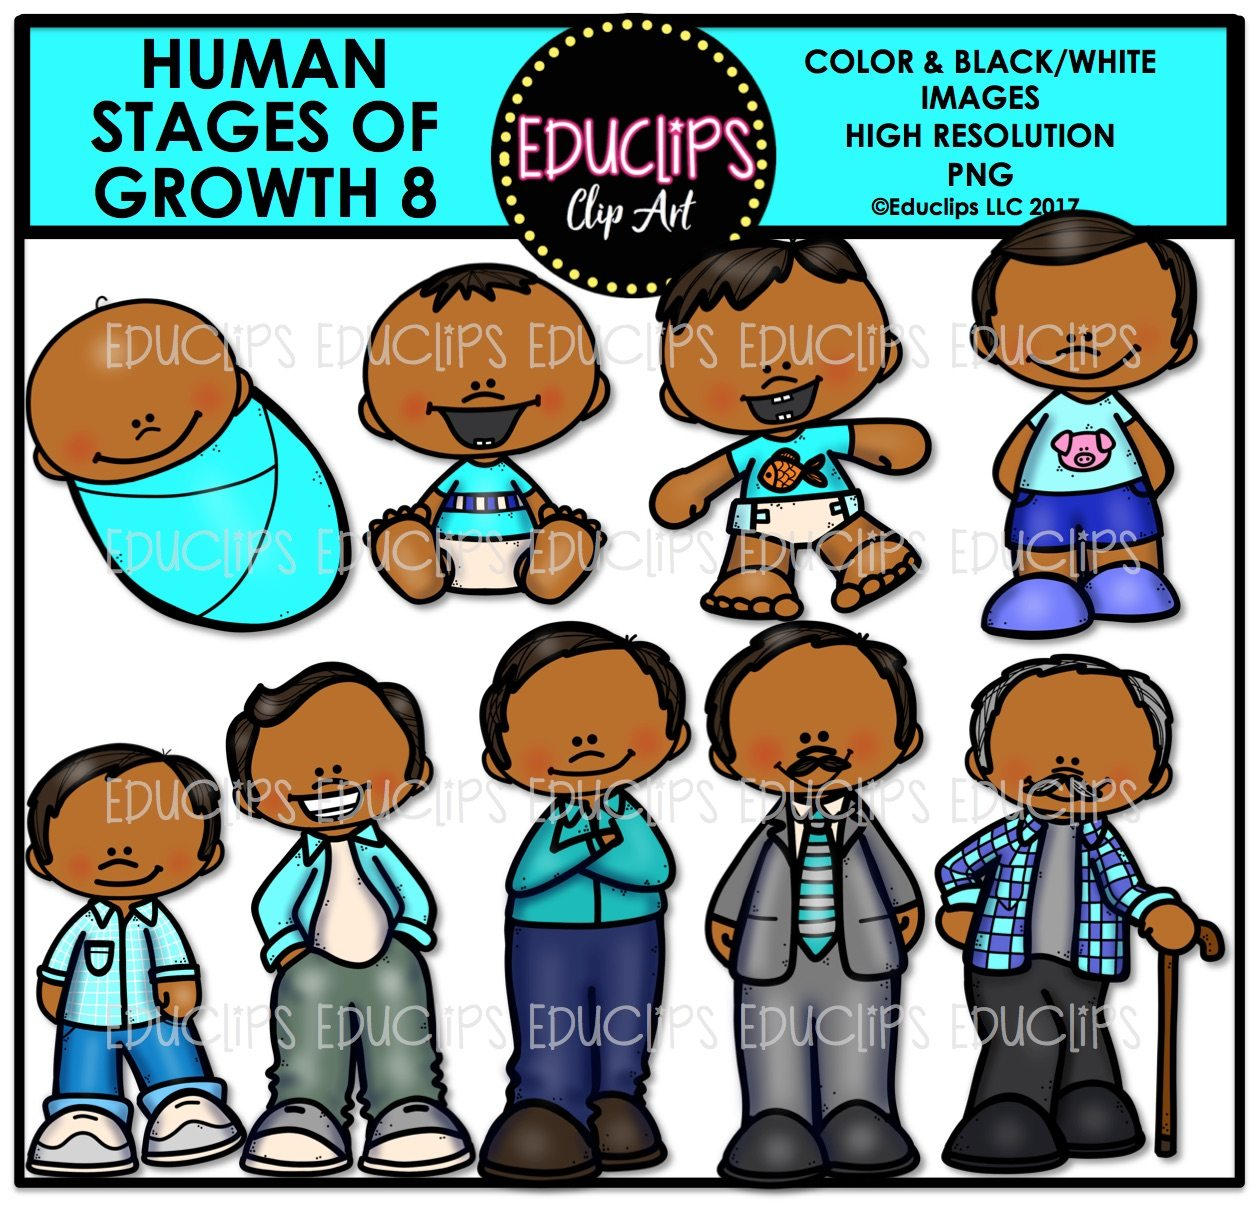 Human Stages Of Growth 8